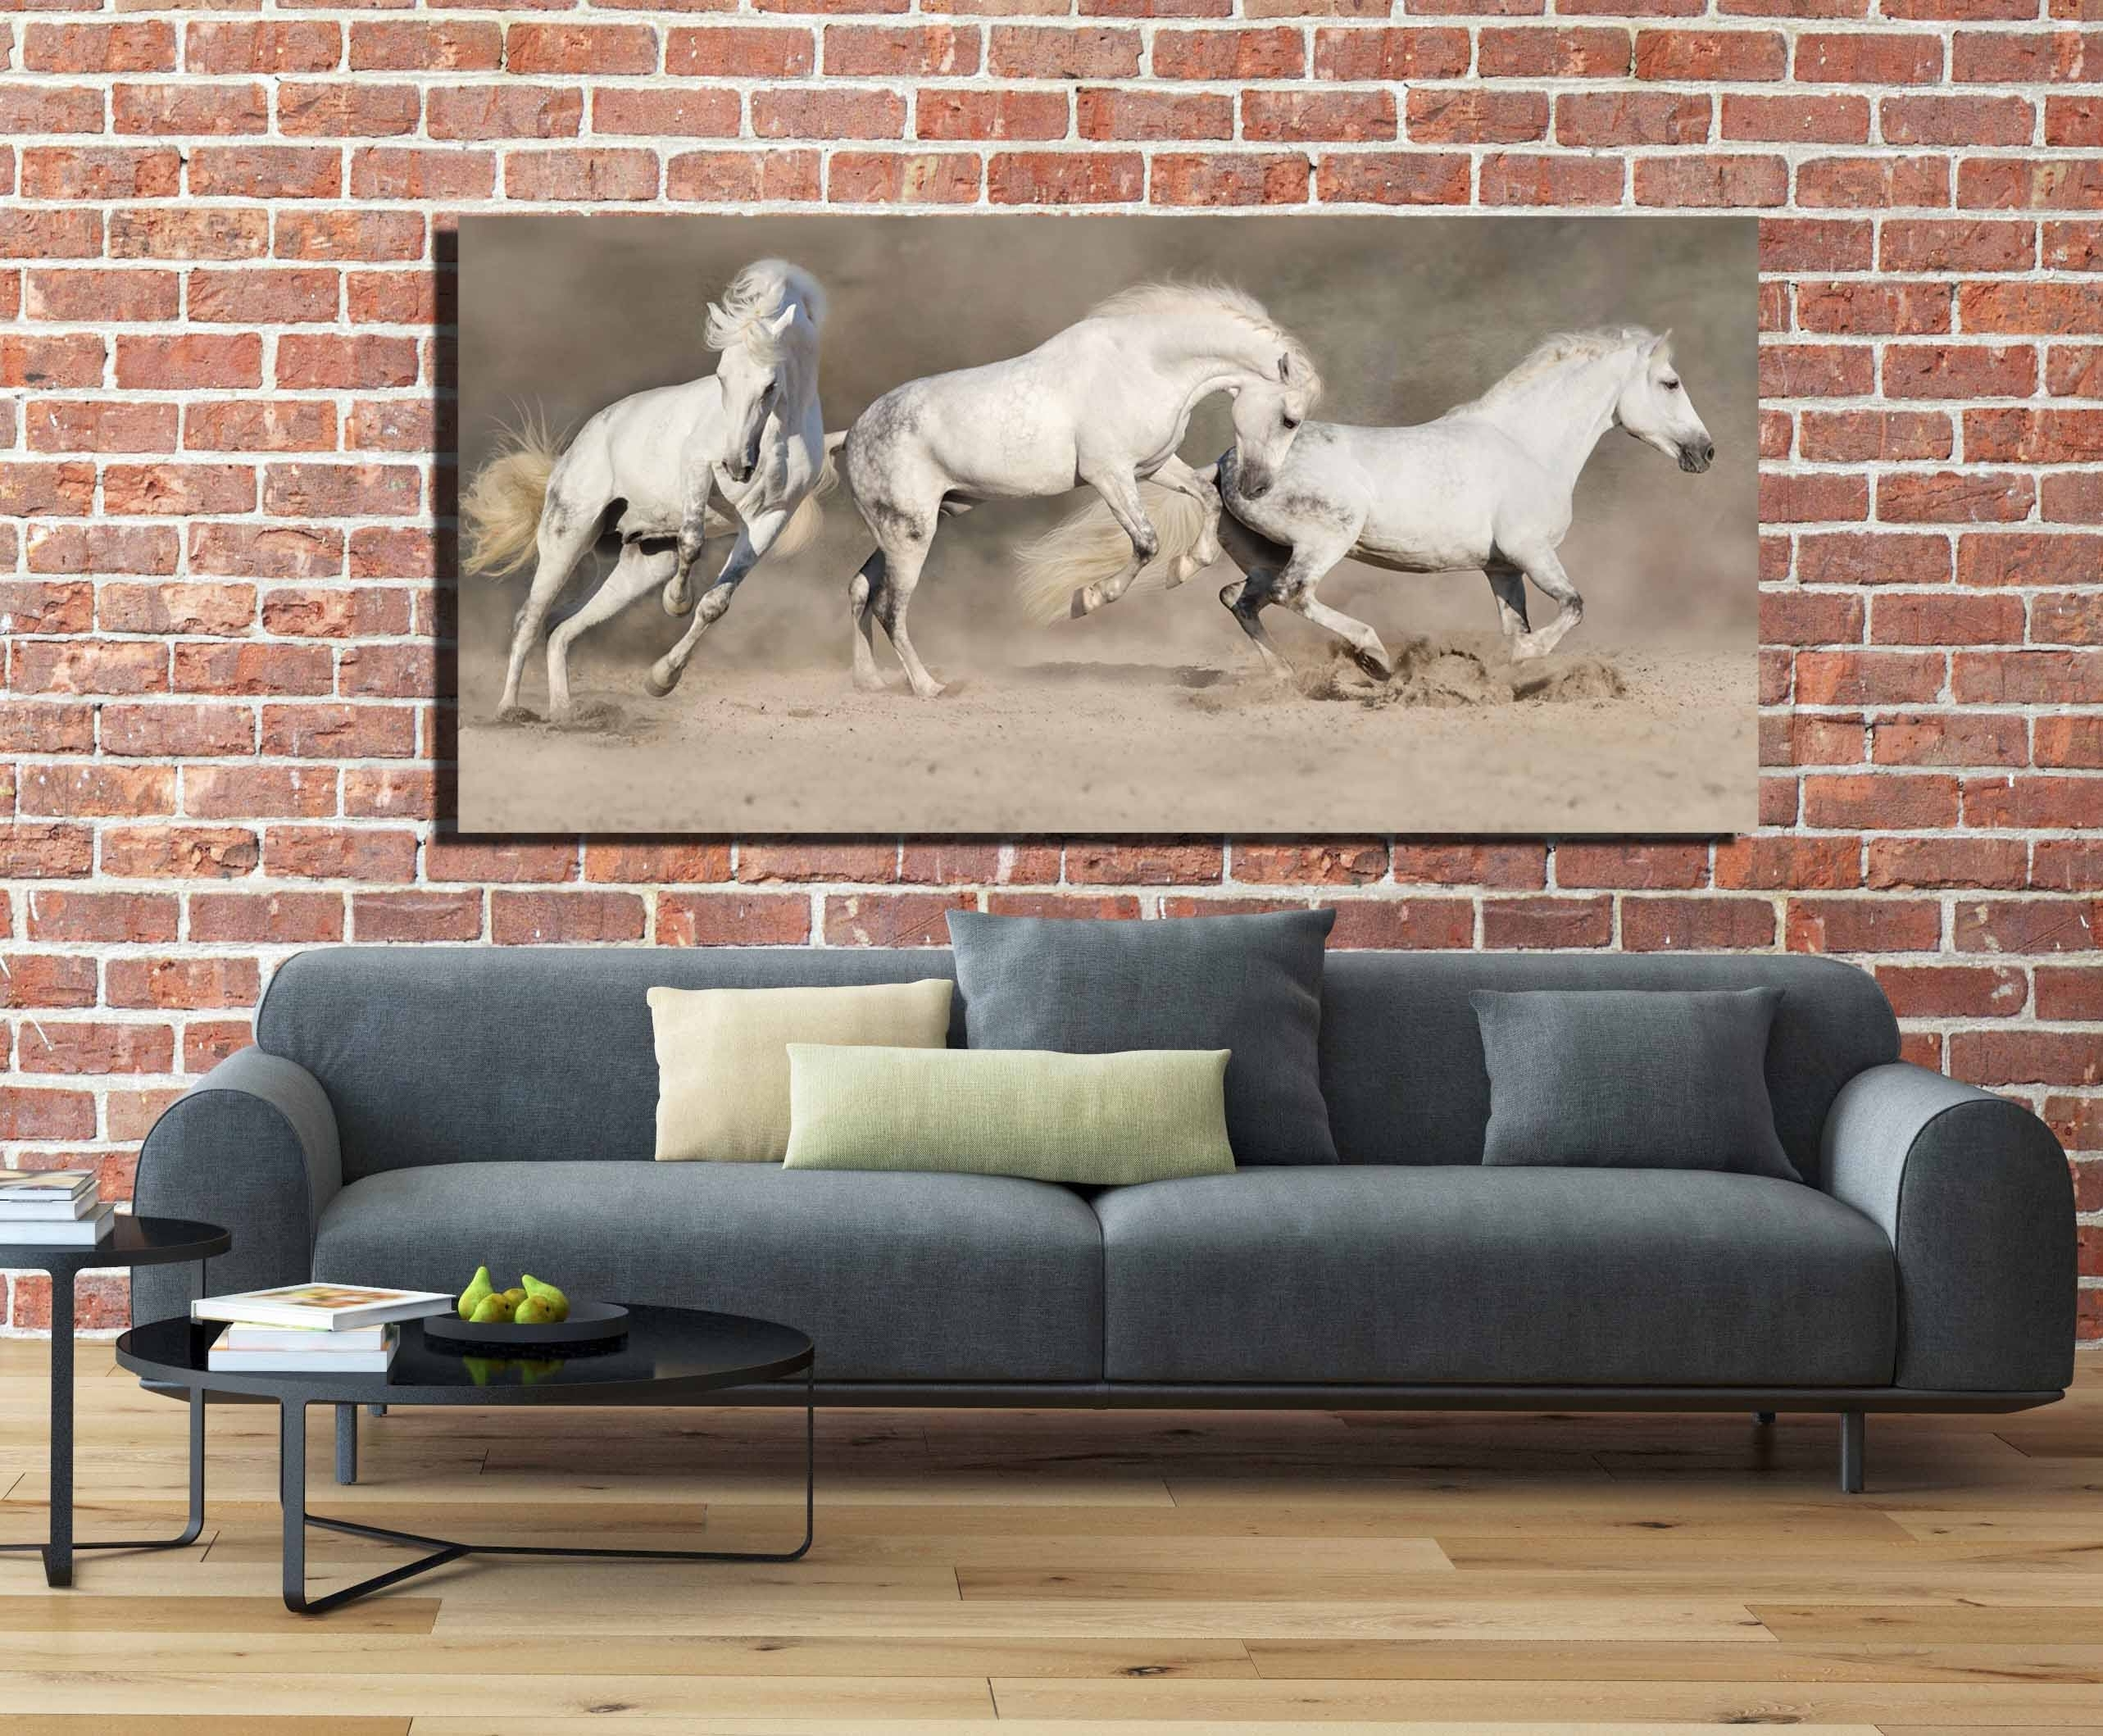 Horse Wall Art,horse Canvas Art,running Horses,running Horses Art With Regard To Most Up To Date Horses Wall Art (Gallery 20 of 20)